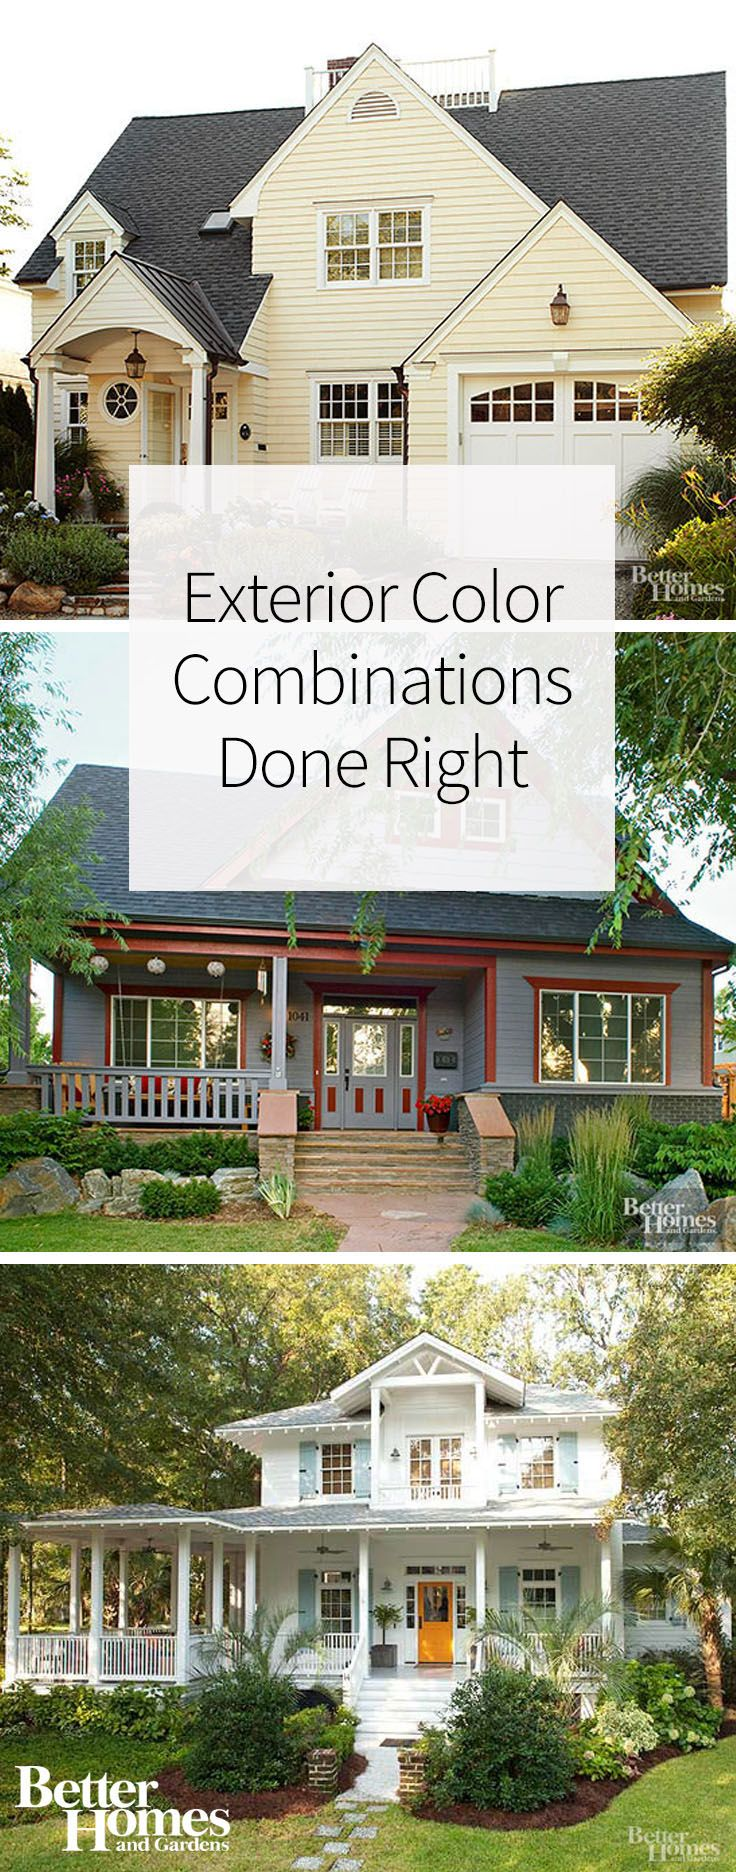 68 best exterior house color ideas images on pinterest exterior homes arquitetura and home. Black Bedroom Furniture Sets. Home Design Ideas